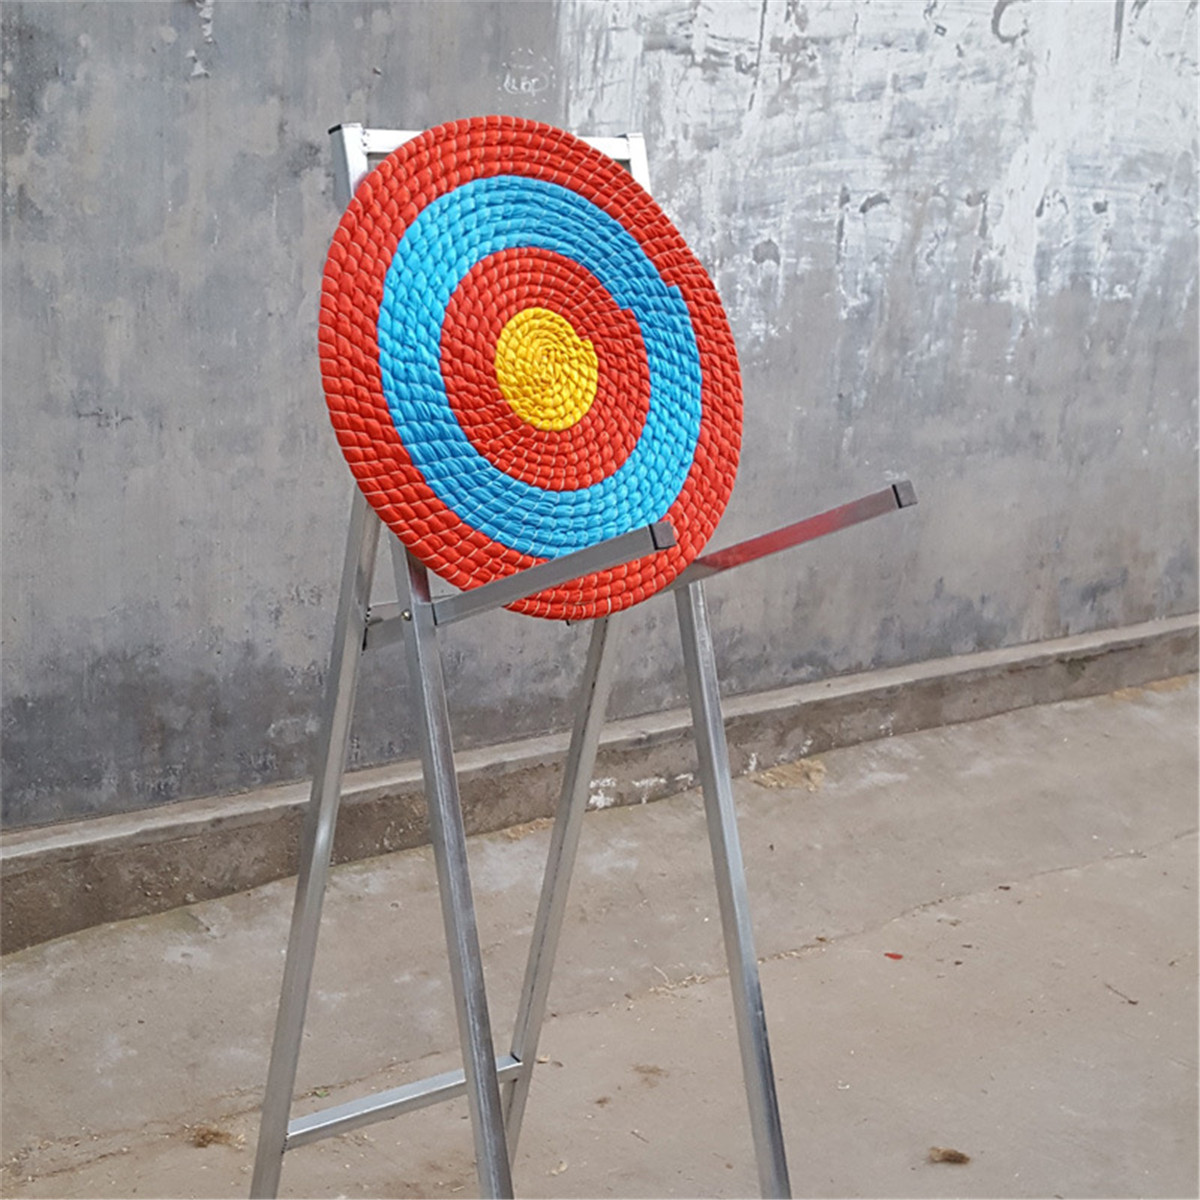 Outdoor Sports Archery Straw Arrow Target Bow Shooting Home Decor Single Layer